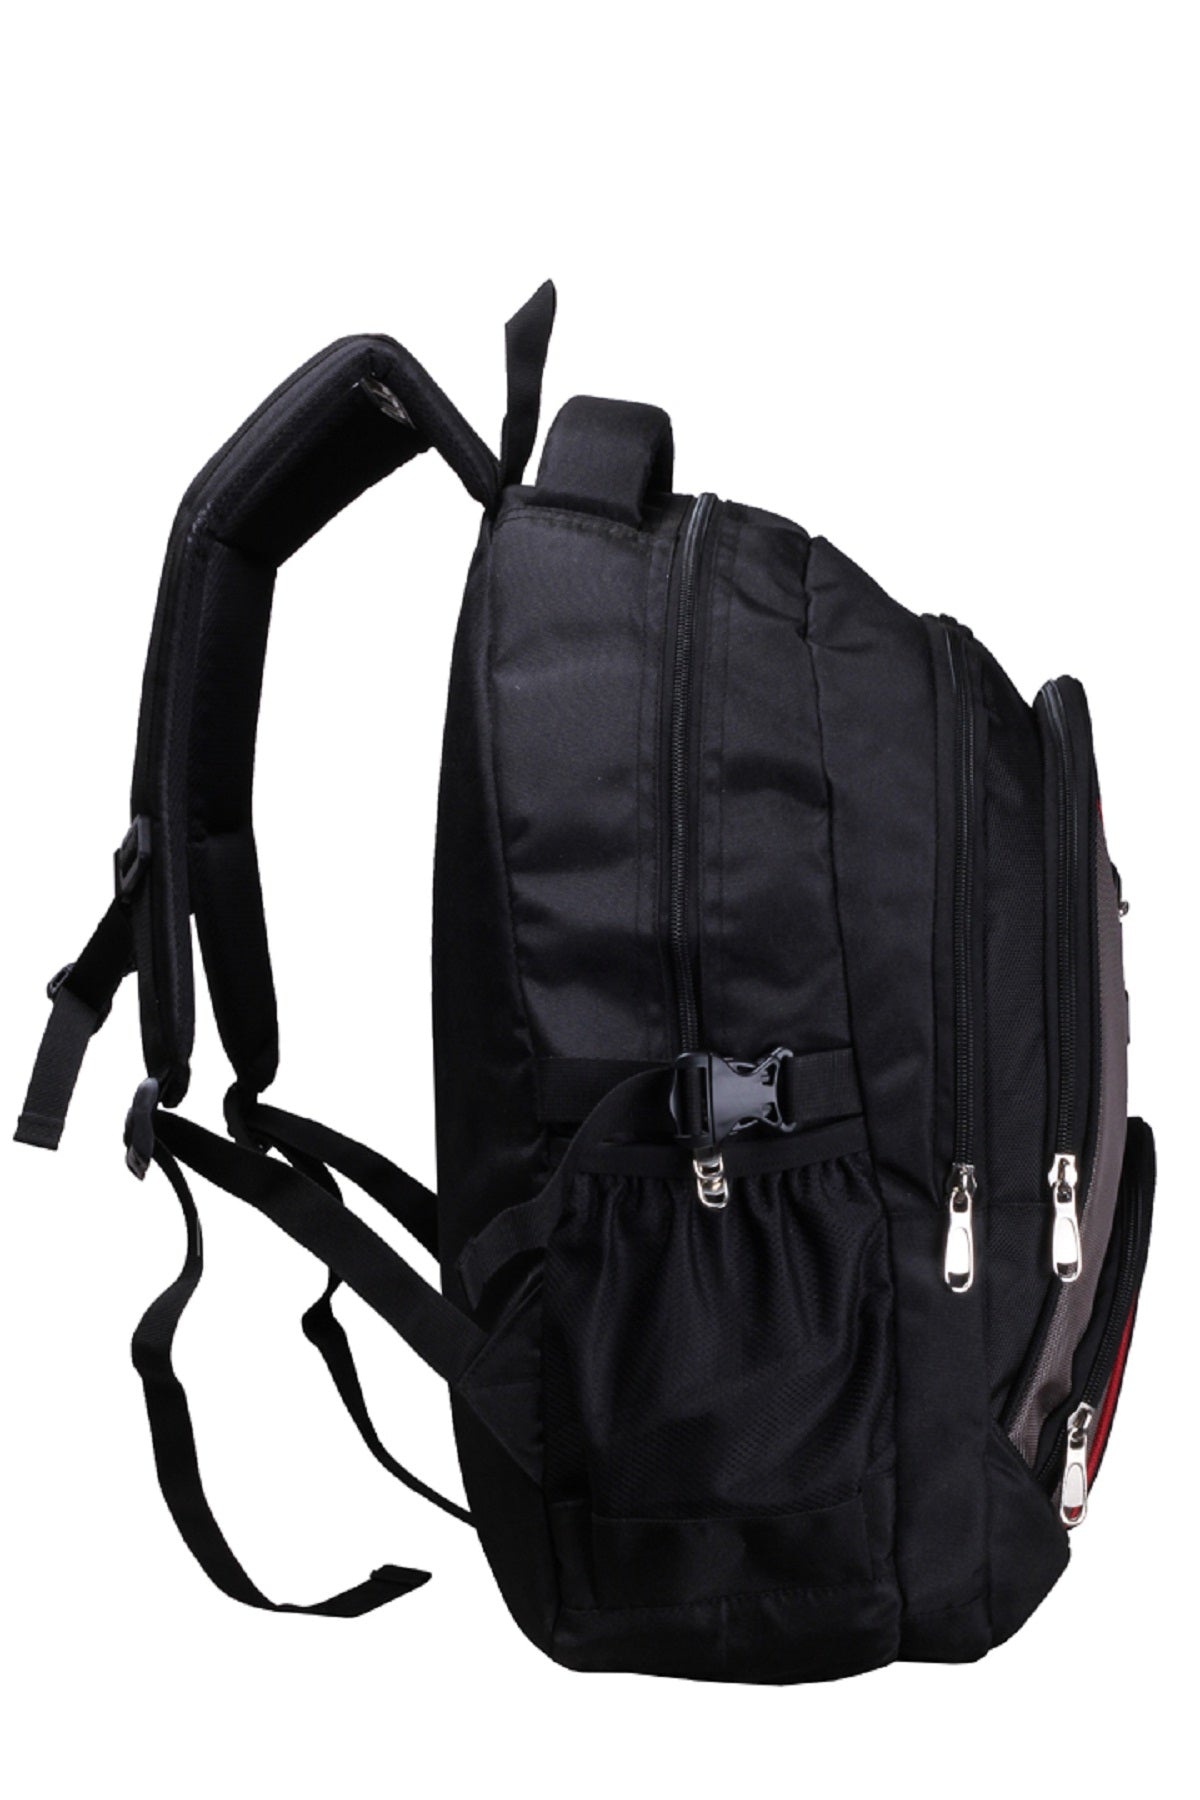 F Gear Midus 29 Ltrs Backpack (Black)